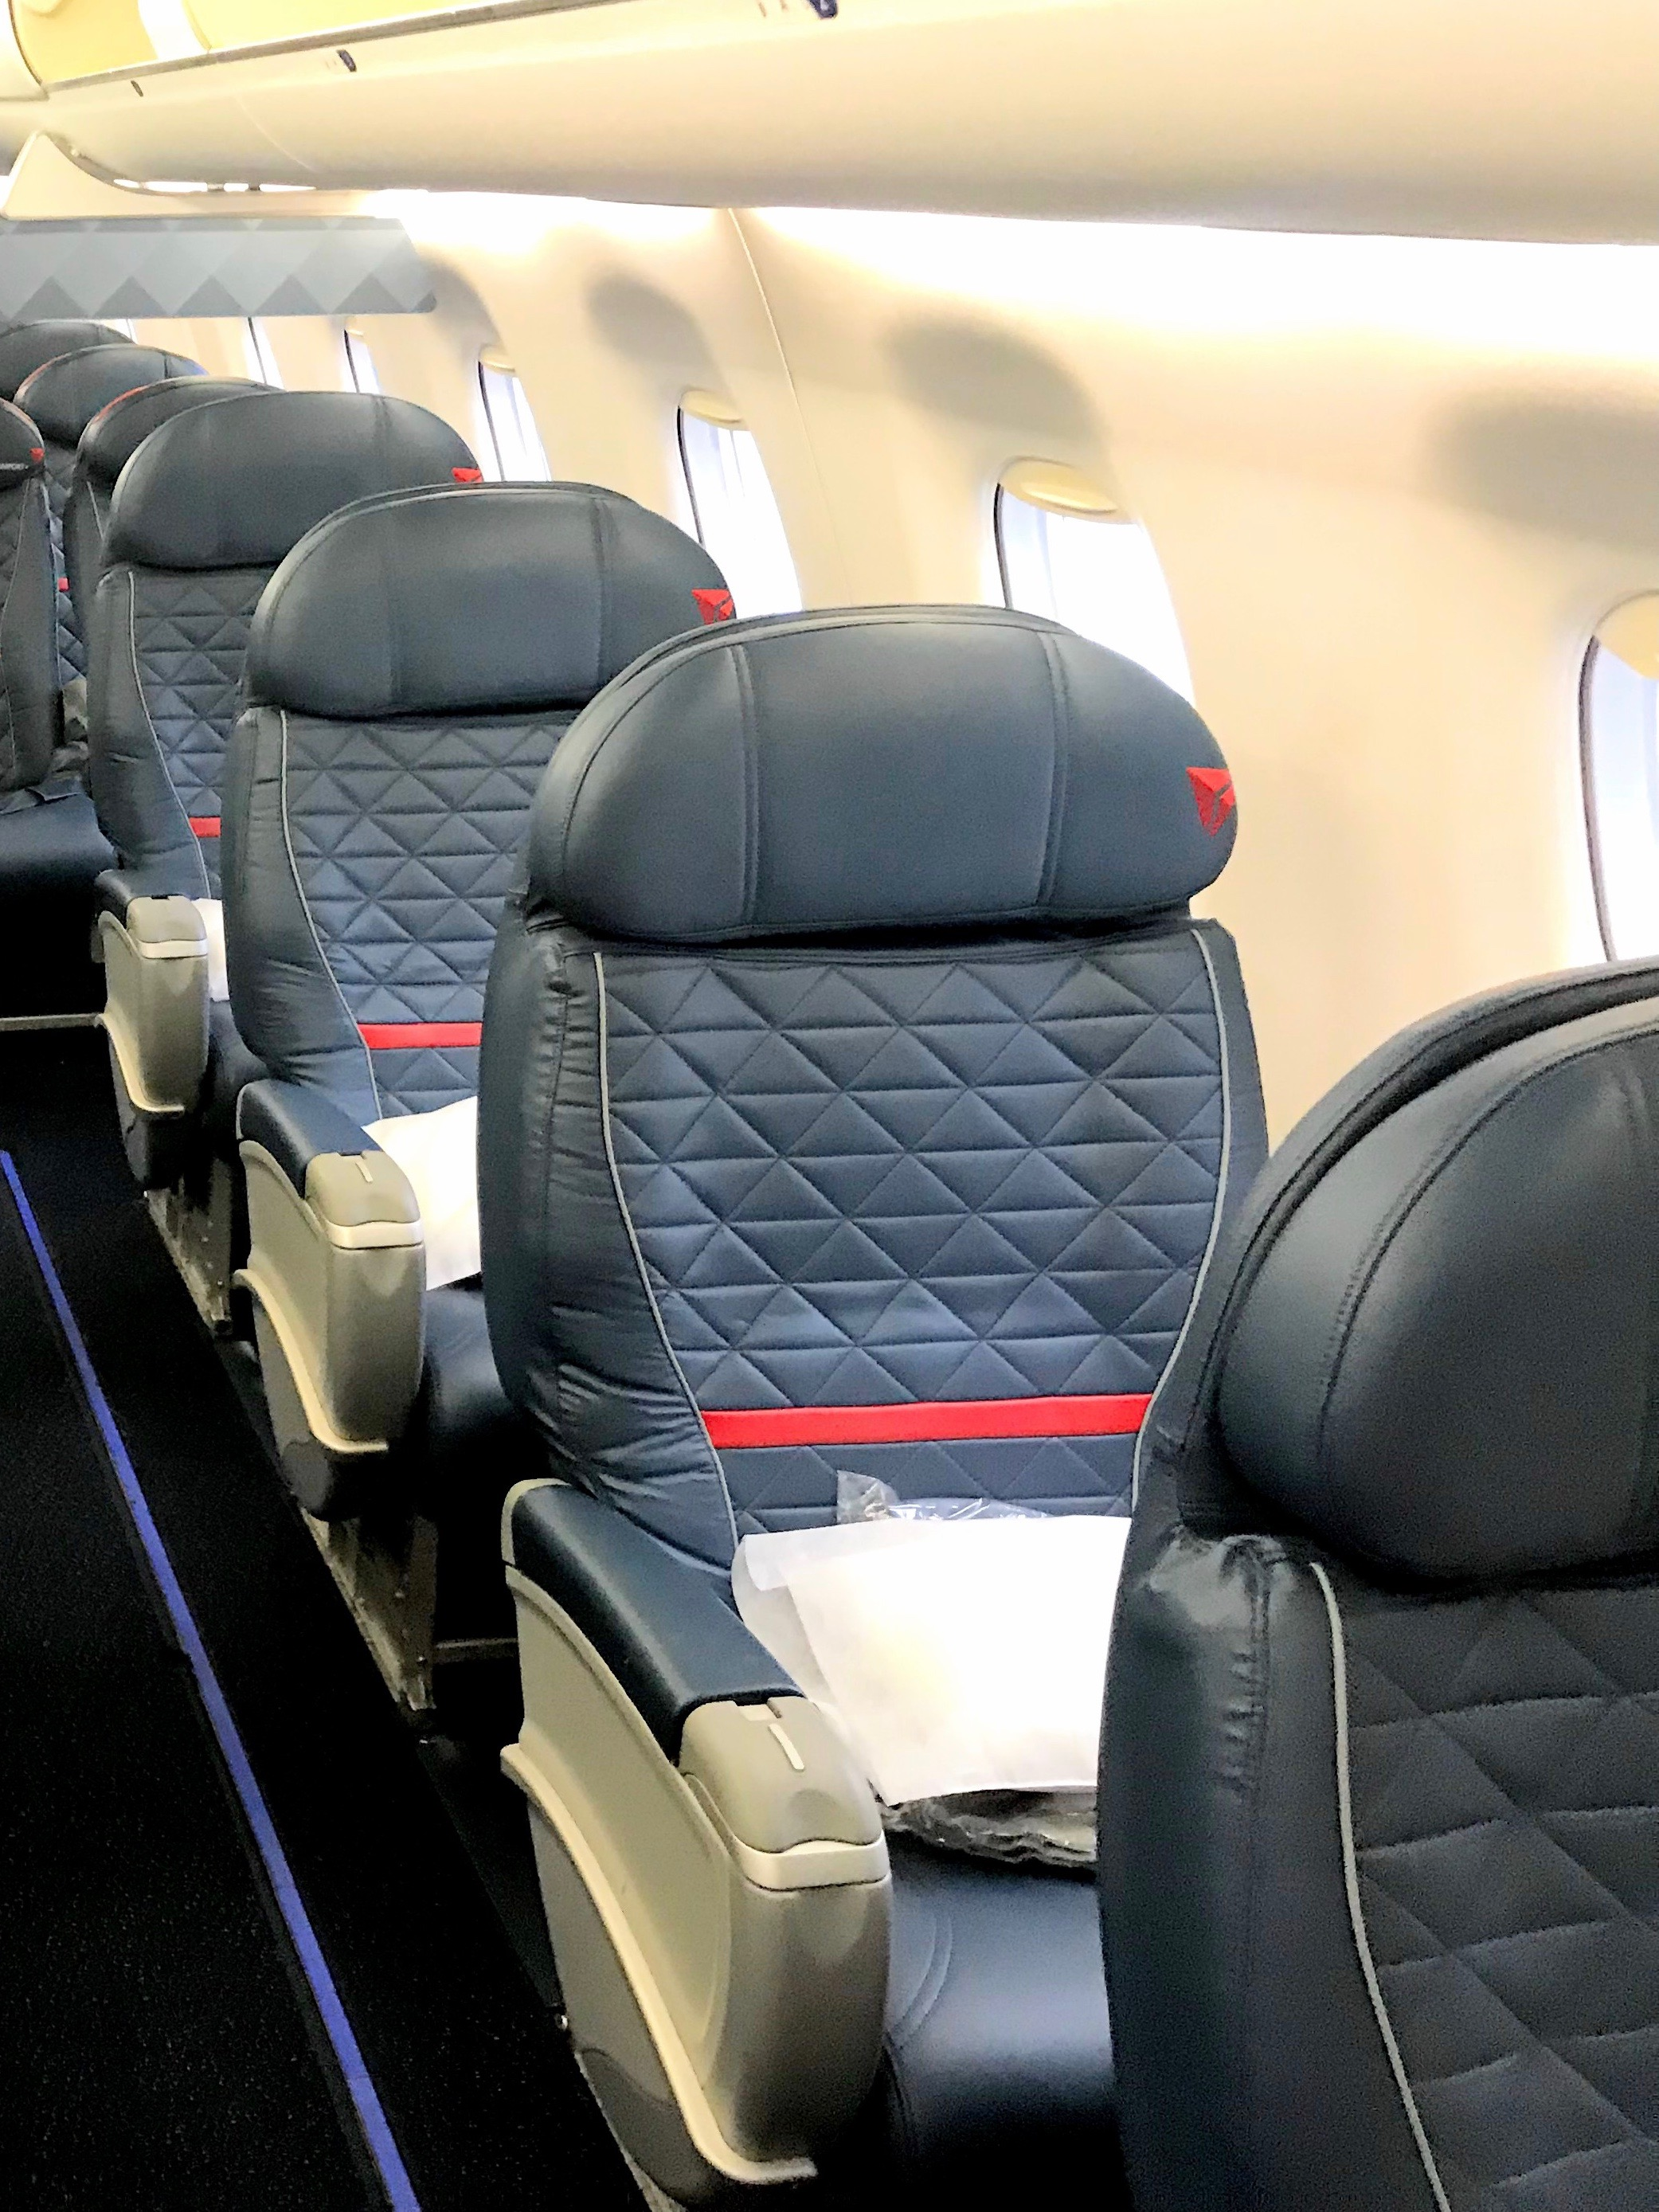 Seat 1A is 1 of 4 single seats in the First Class cabin